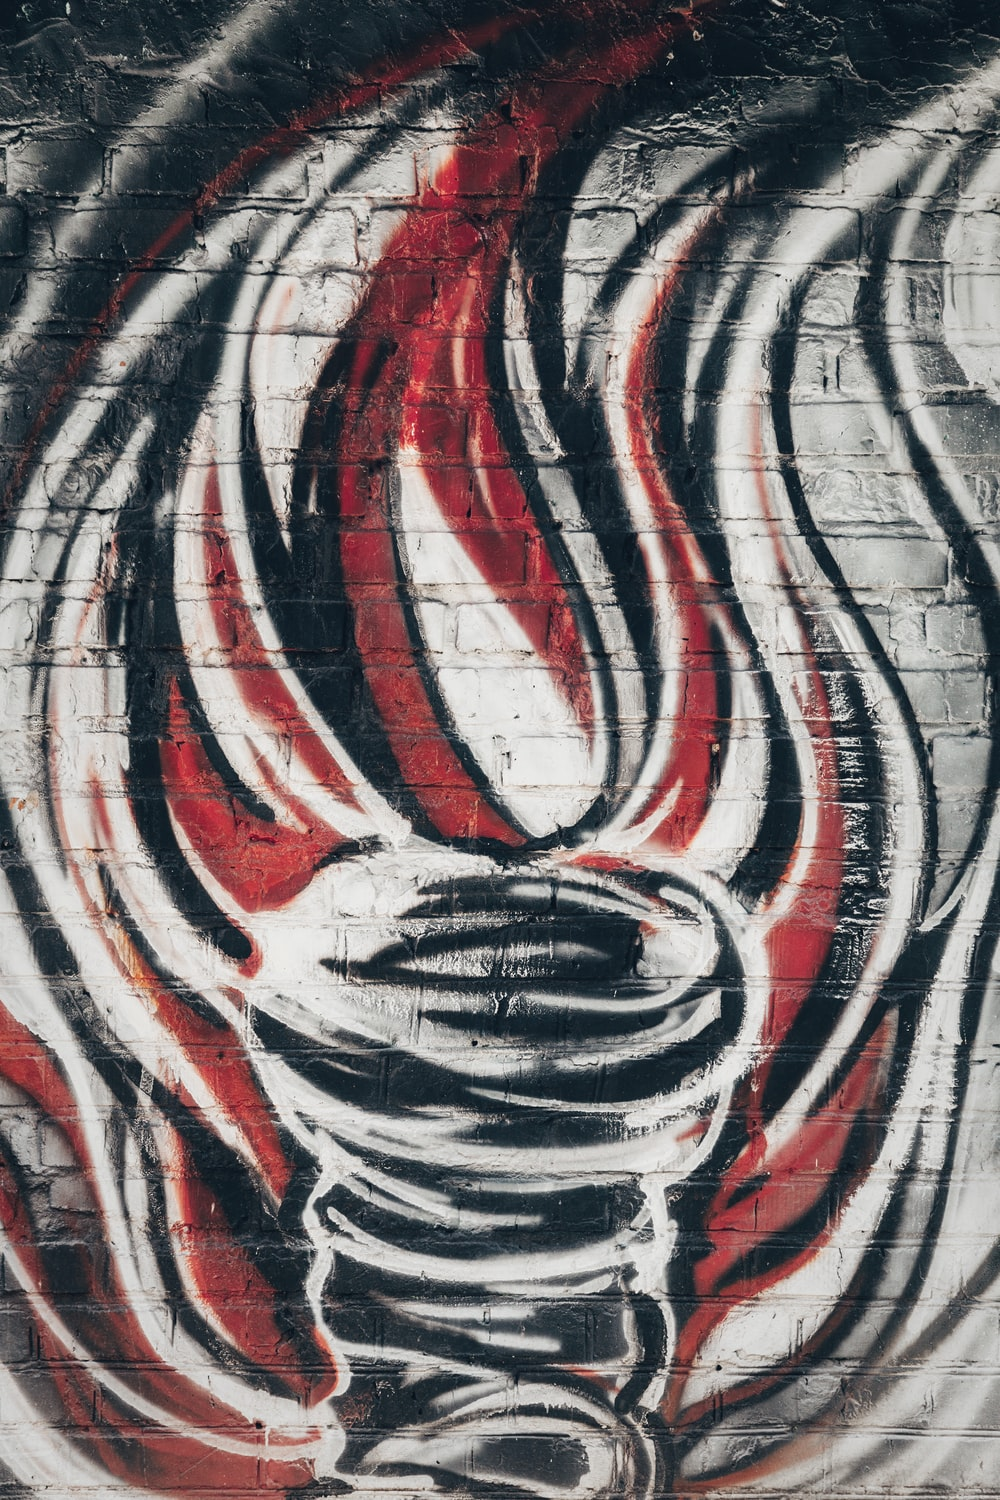 gray, red and black graffiti on a wall